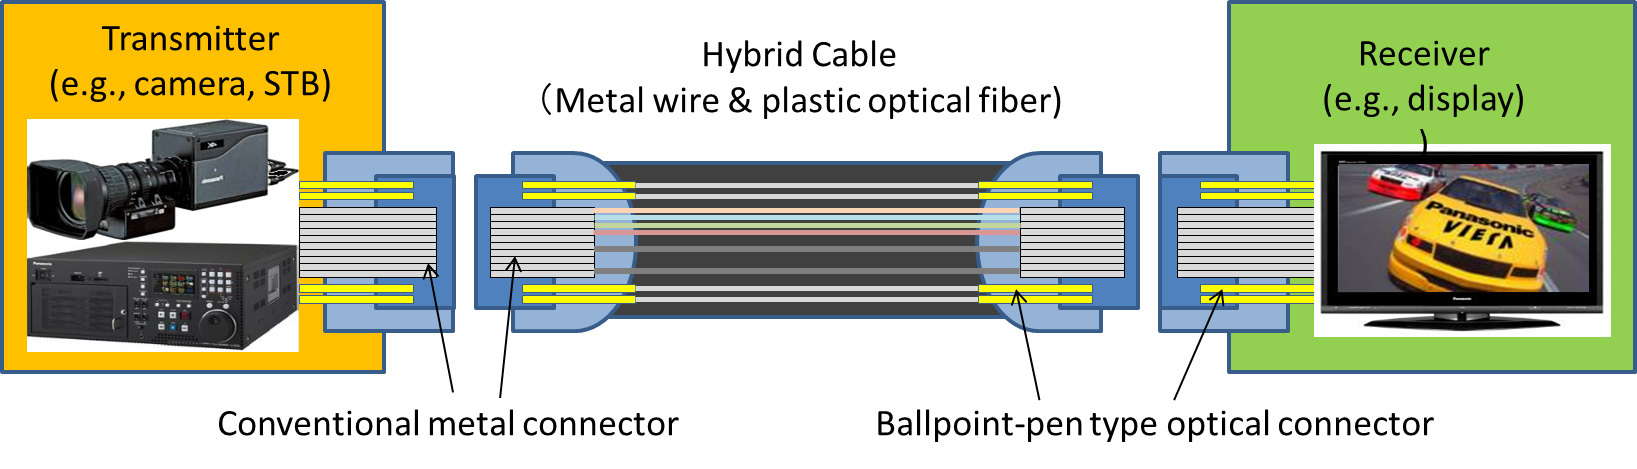 Hybrid Cable (Metal wire & plastic optical fiber) (Graphic: Business Wire)